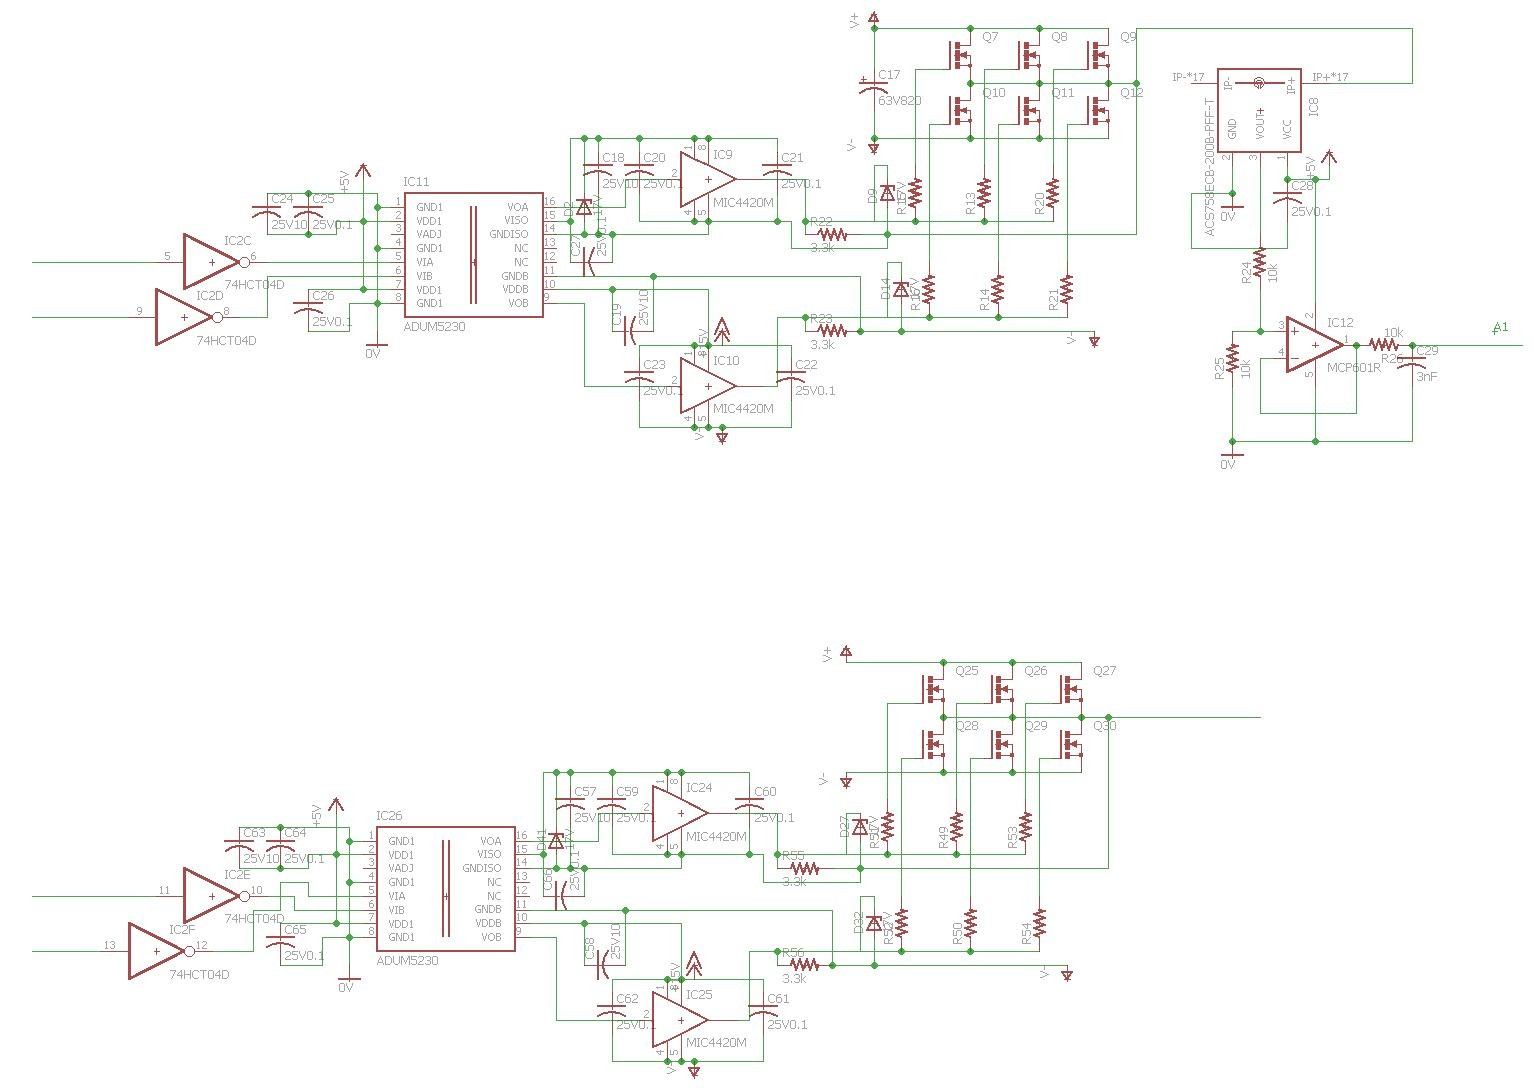 Inverter schematic